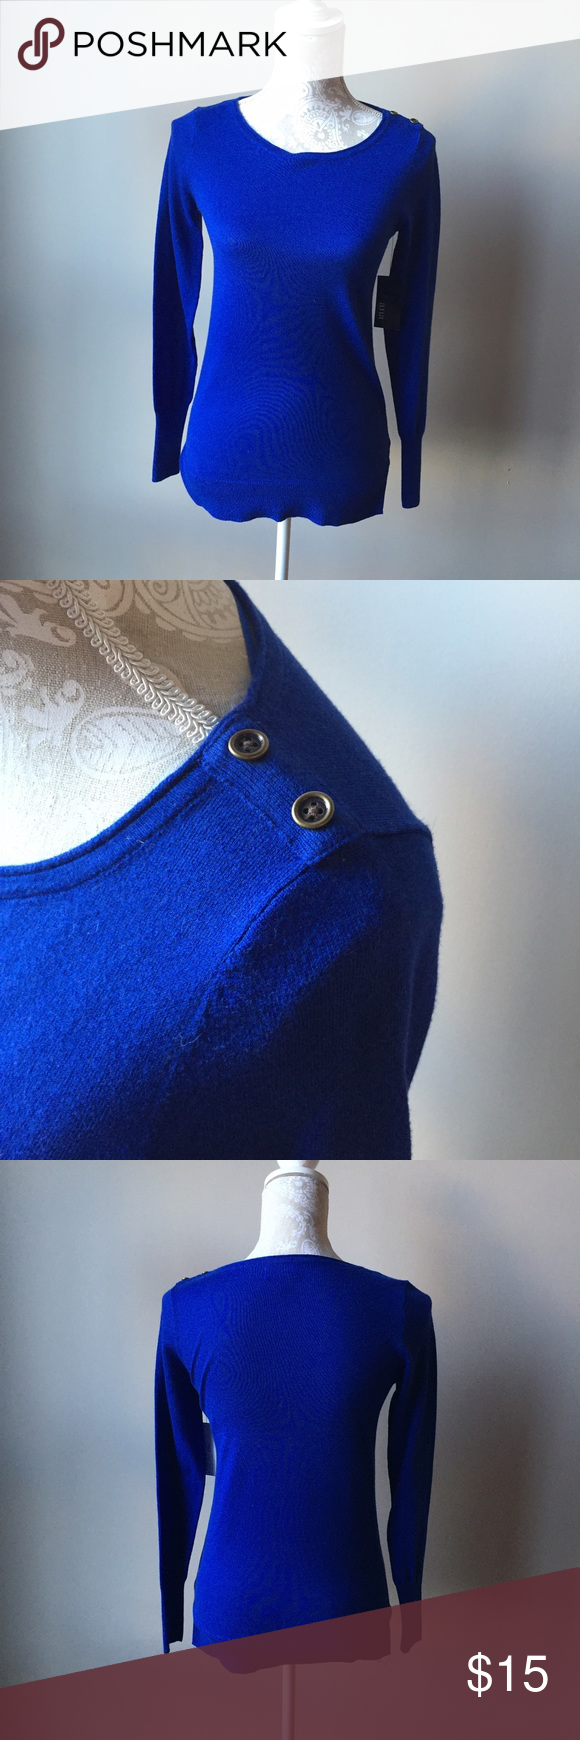 Blue sweater with button detail Brand new with tags and ready for a new home! Ana Sweaters